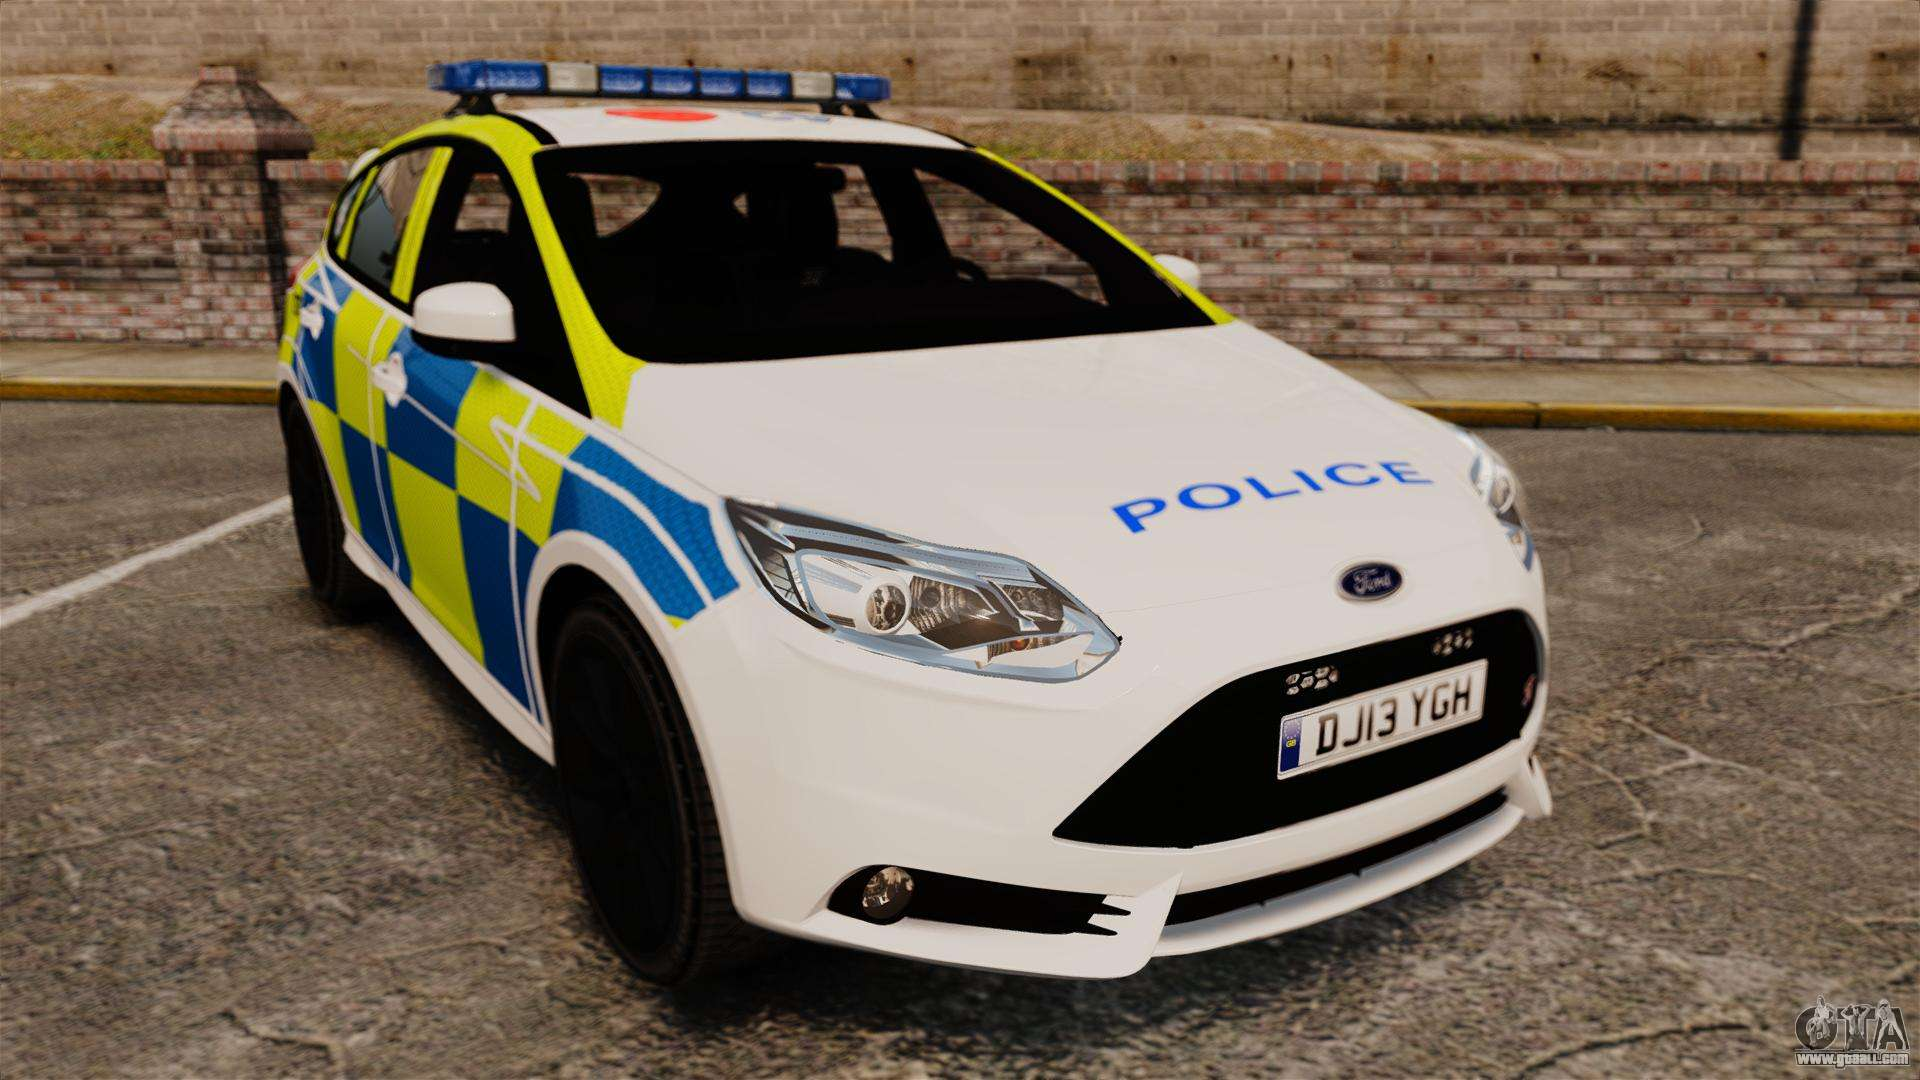 Ford Focus 2013 Hatchback >> Ford Focus 2013 Uk Police [ELS] for GTA 4